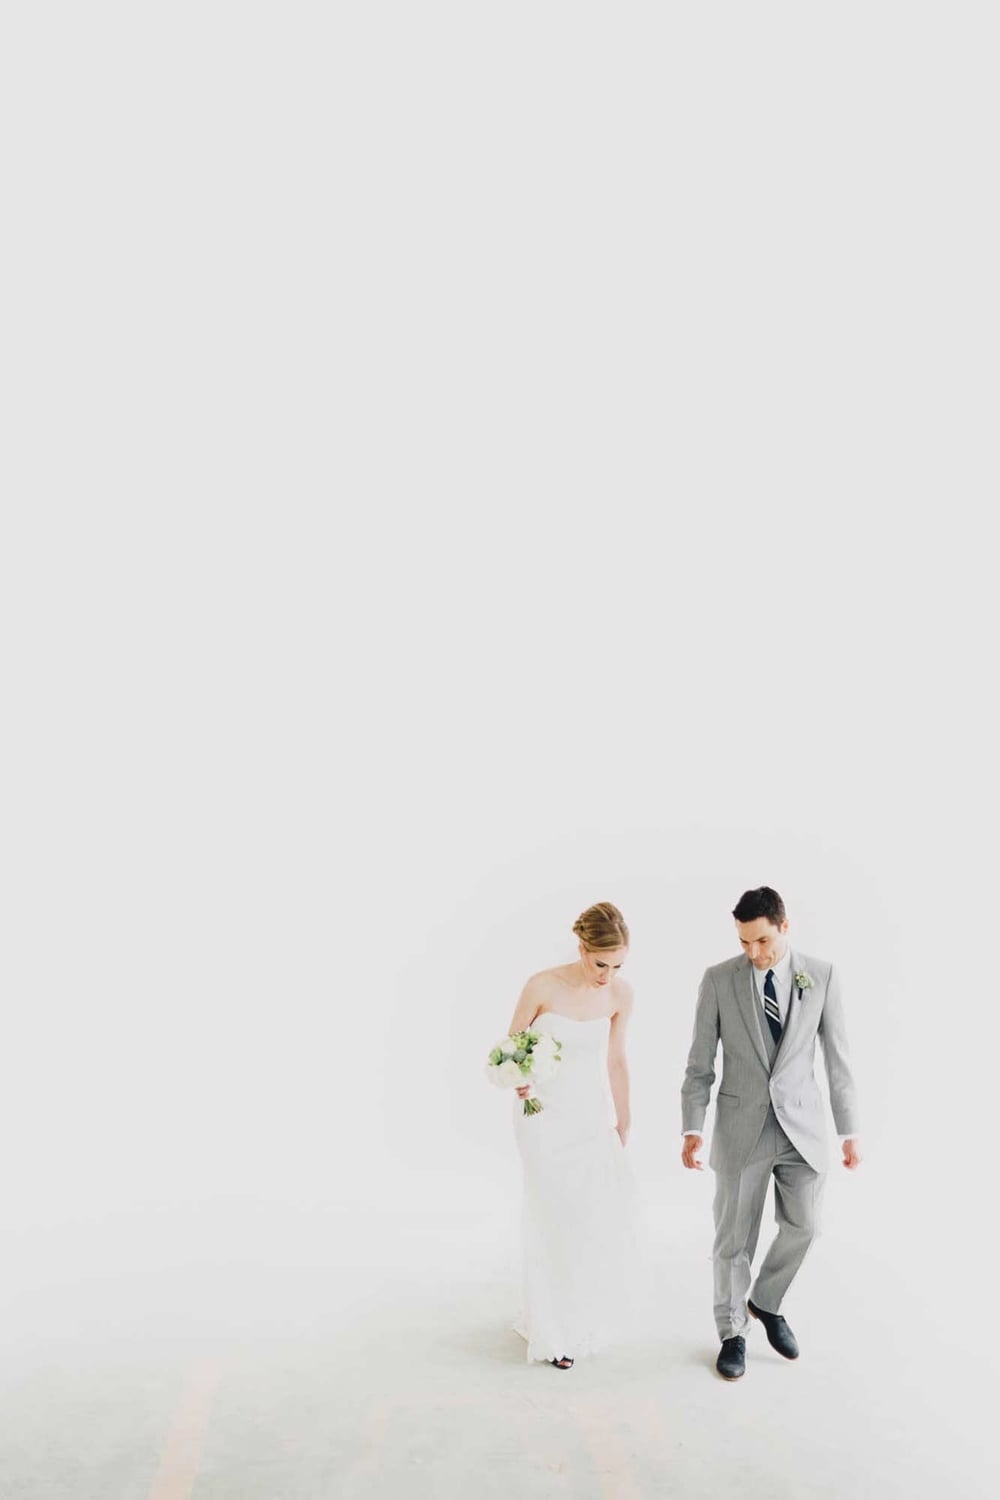 Clean, Minimalist Wedding Portrait - Cincinnati Ohio